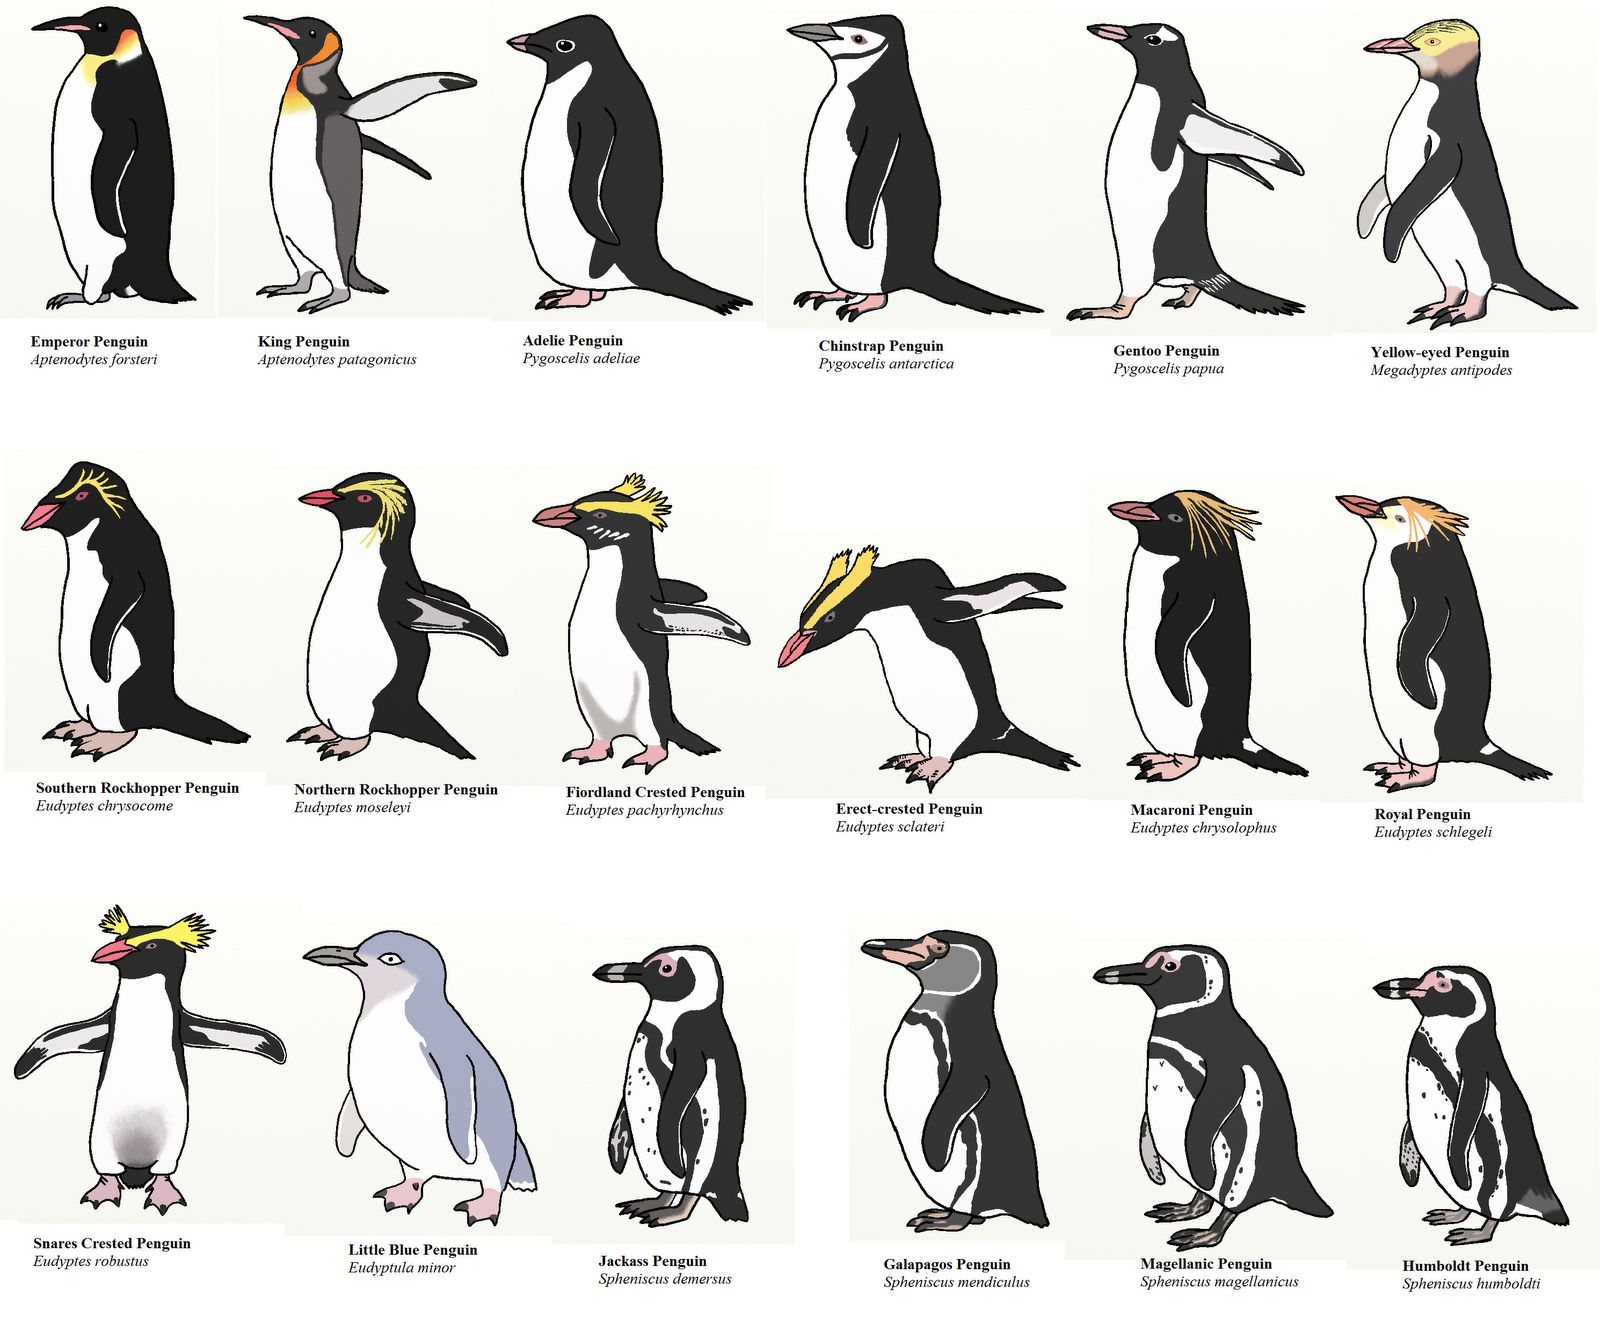 Penguins of the World: Google Images